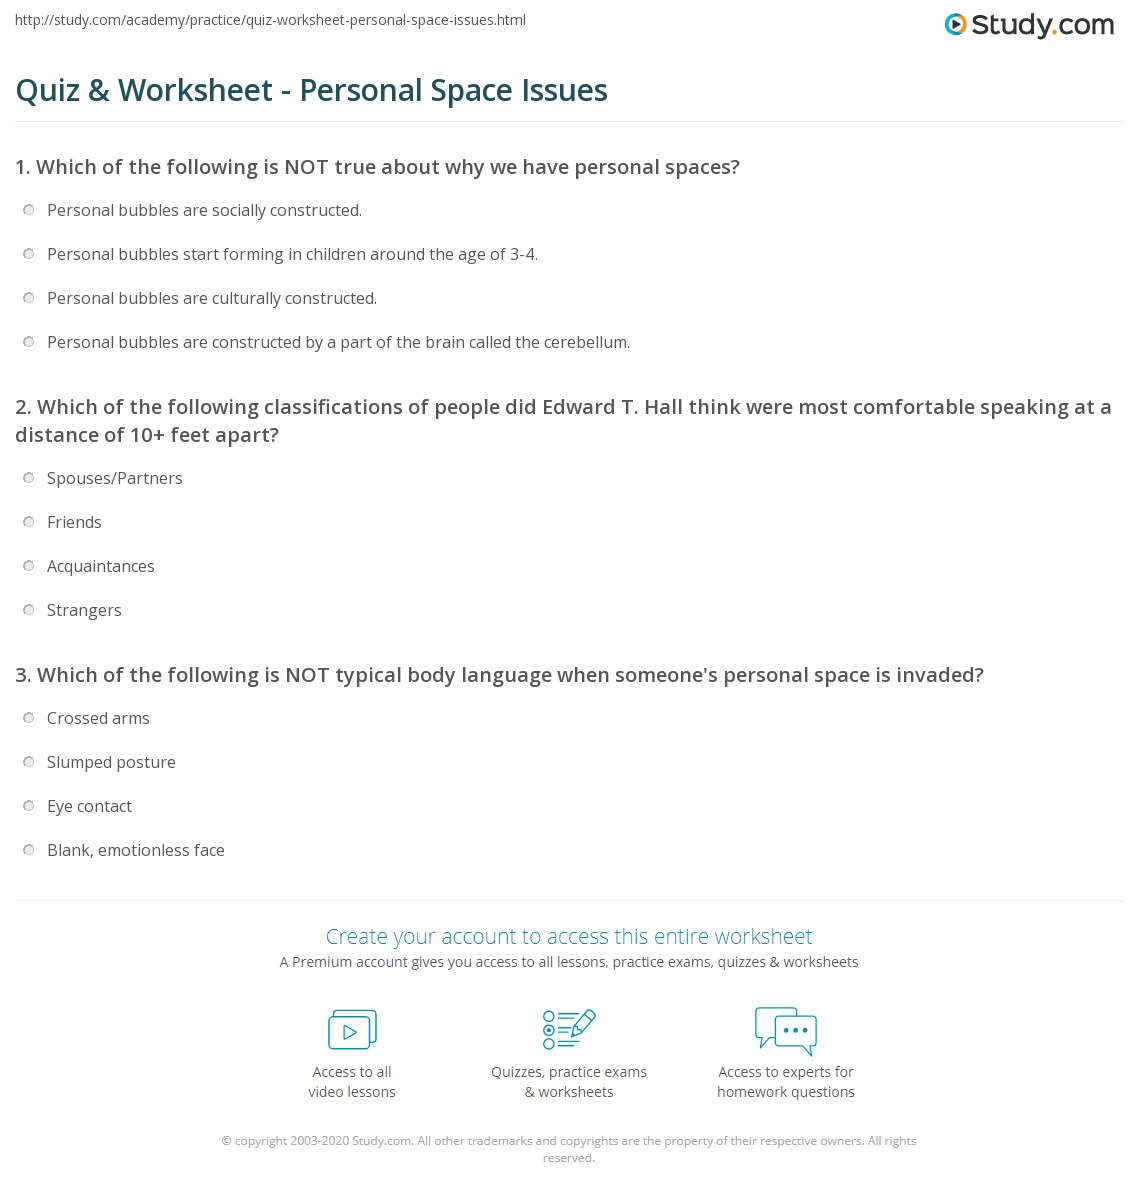 Quiz & Worksheet - Personal Space Issues | Study com